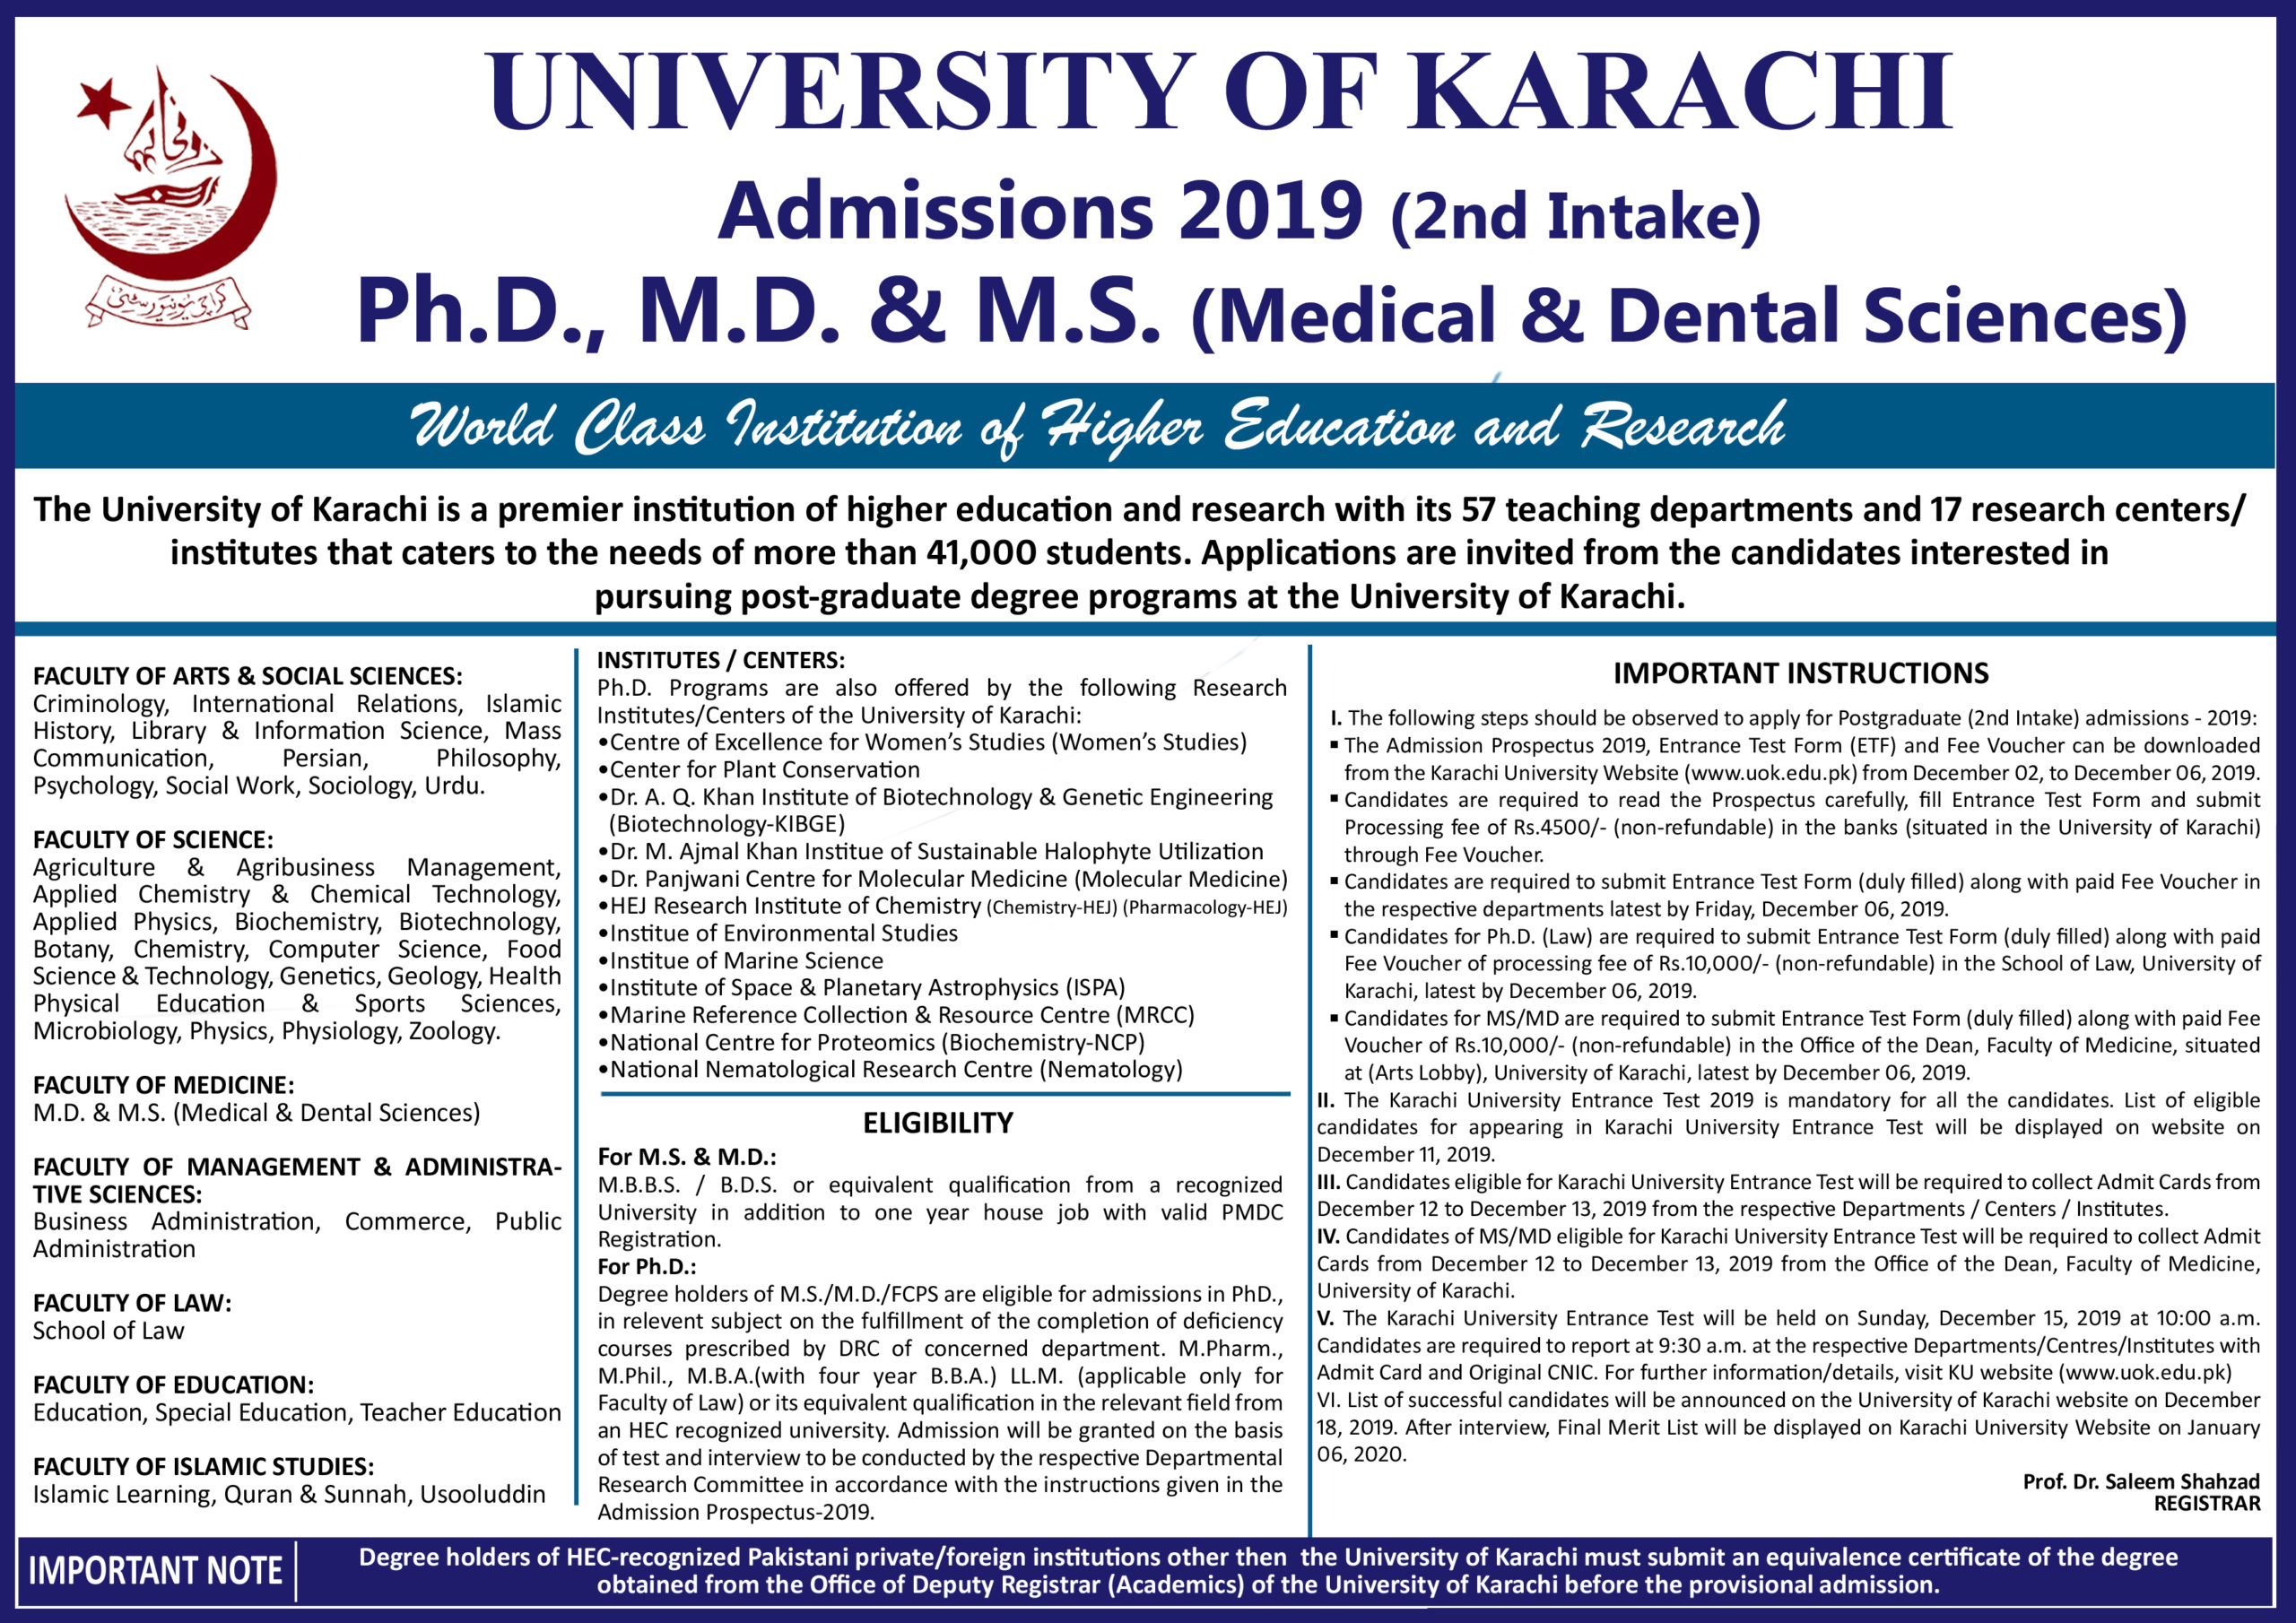 University of Karachi Admission Phd MD MS Final Merit List